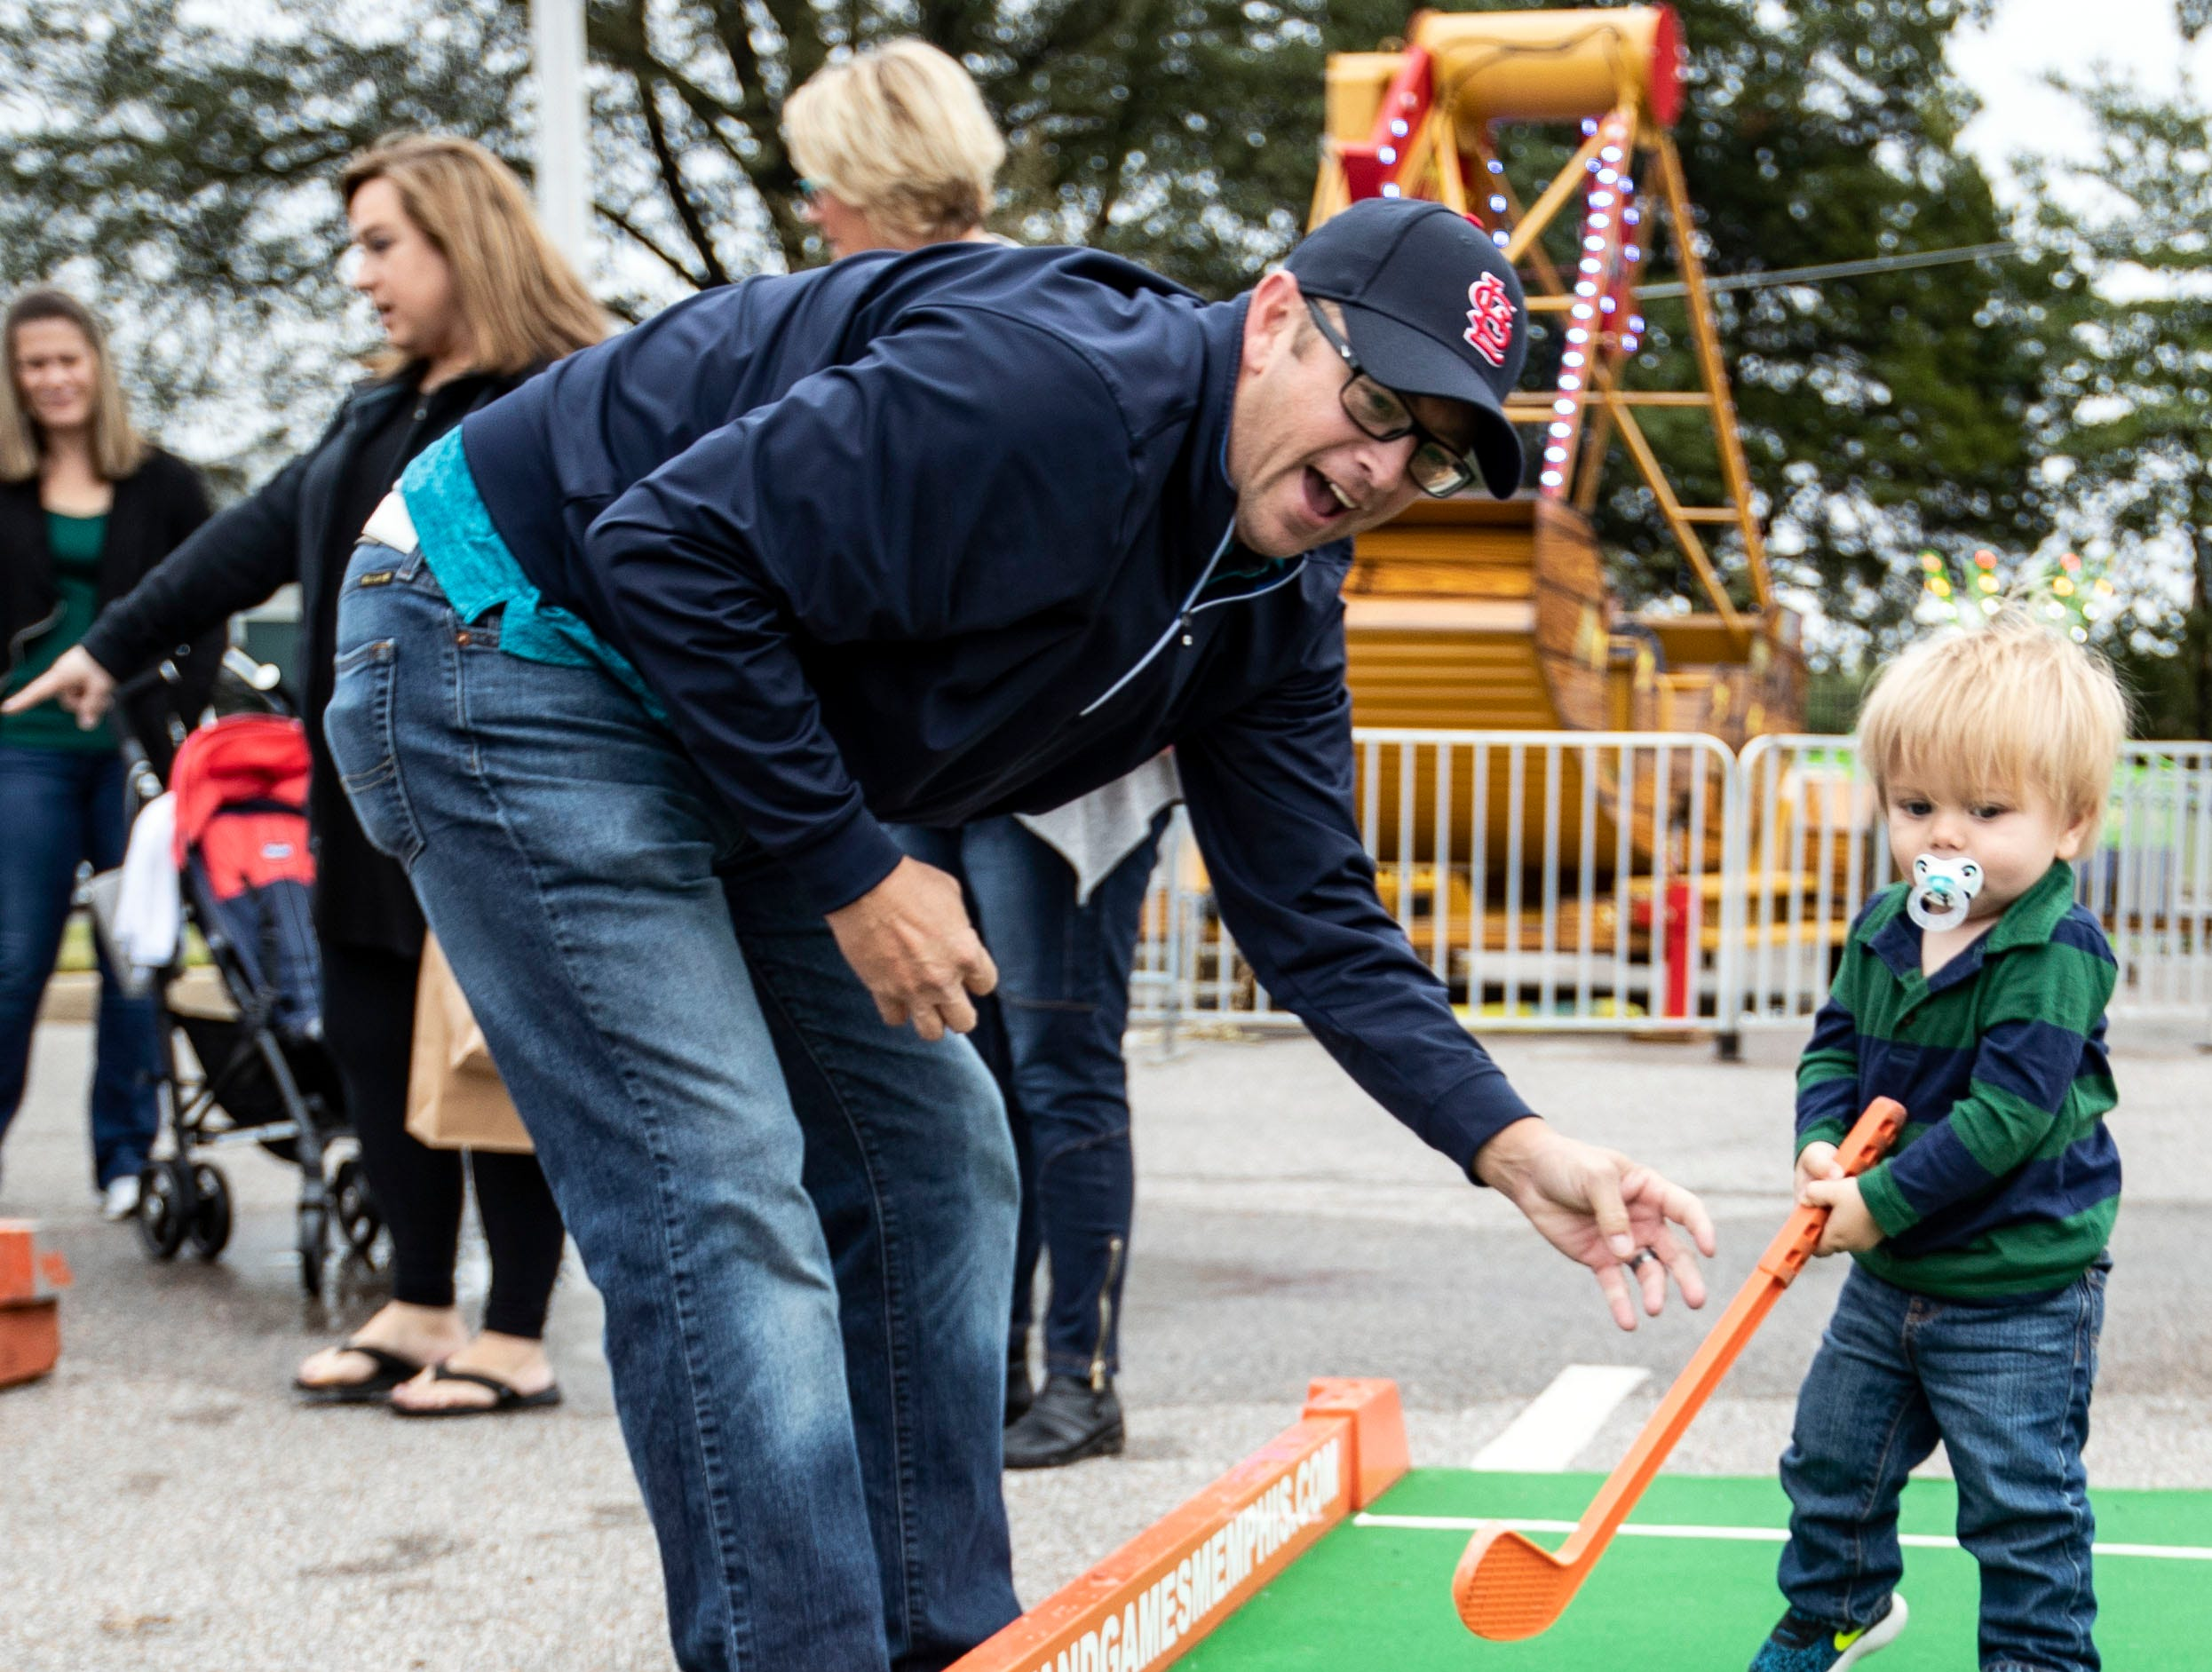 Jeremy Townsend assists his son Toby Townsend in a game miniature golf ball lands in the hole at the St. Ann Fall Fest Saturday October 20, 2018.